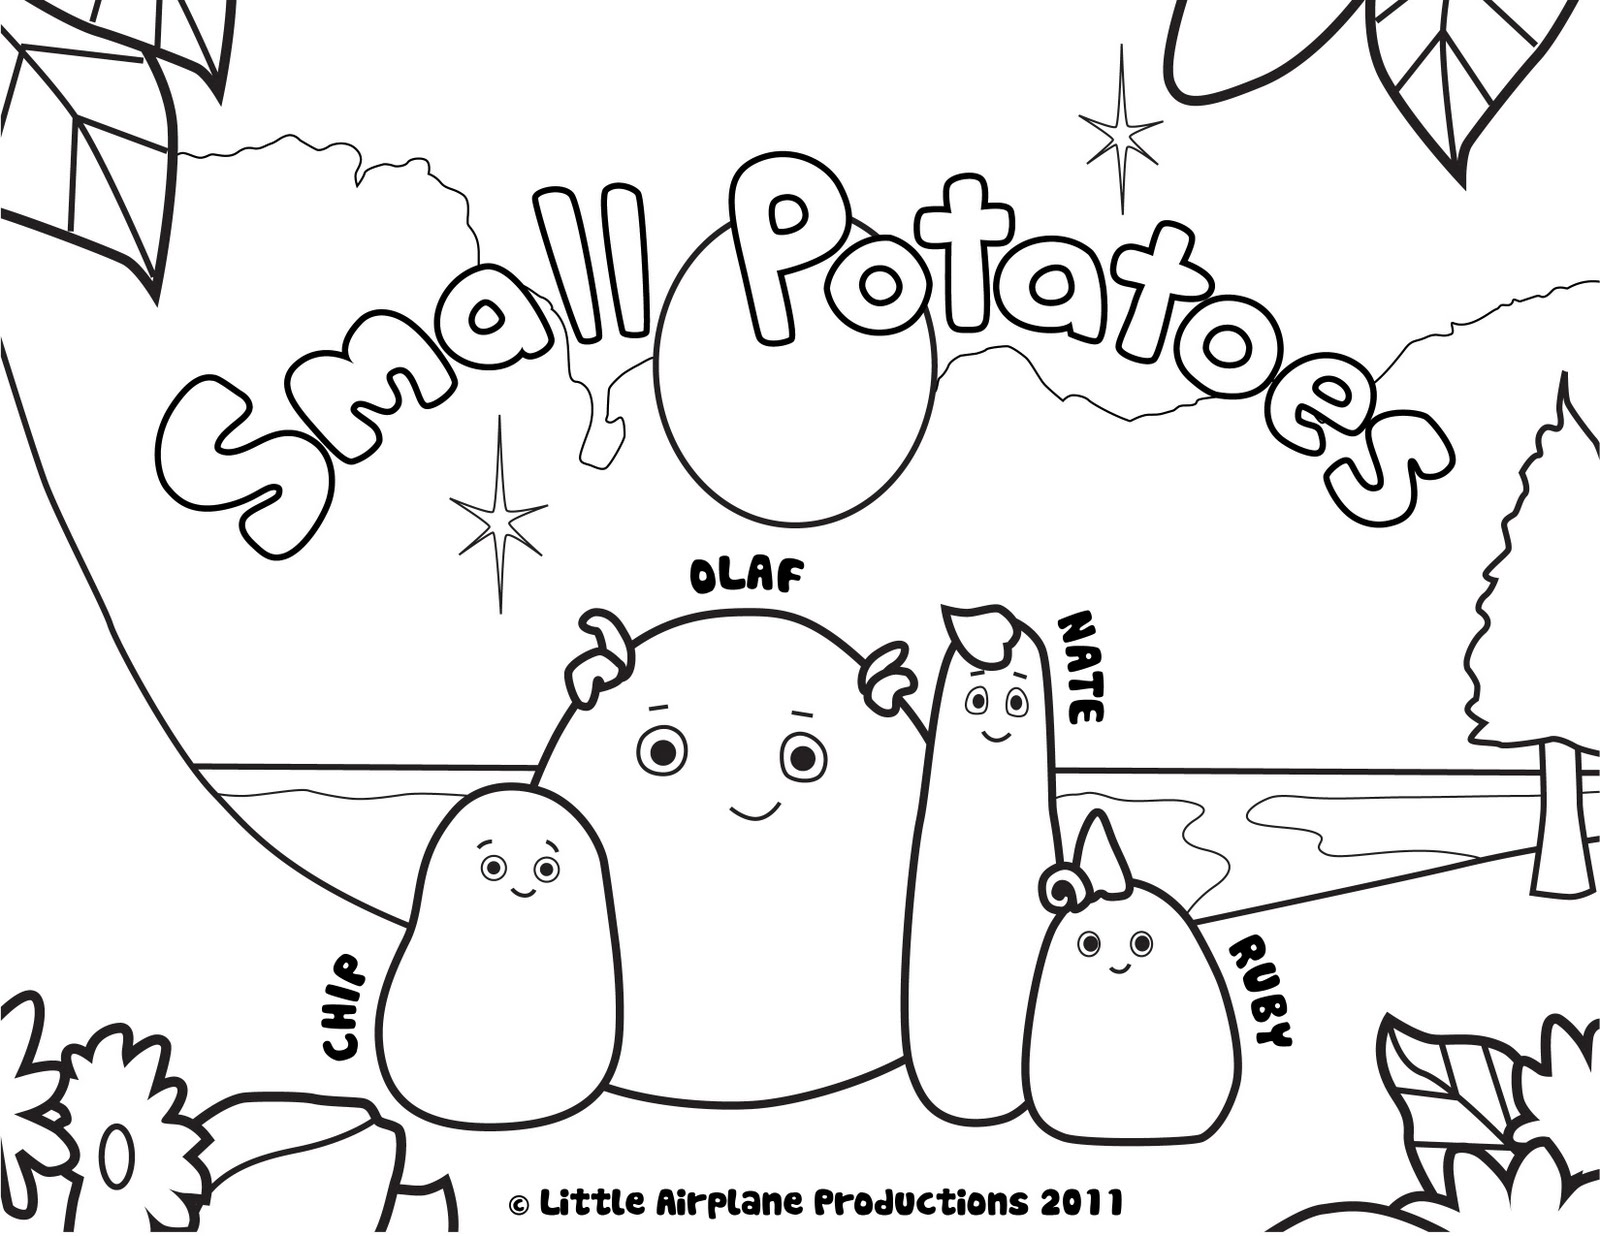 small potatoes coloring pages